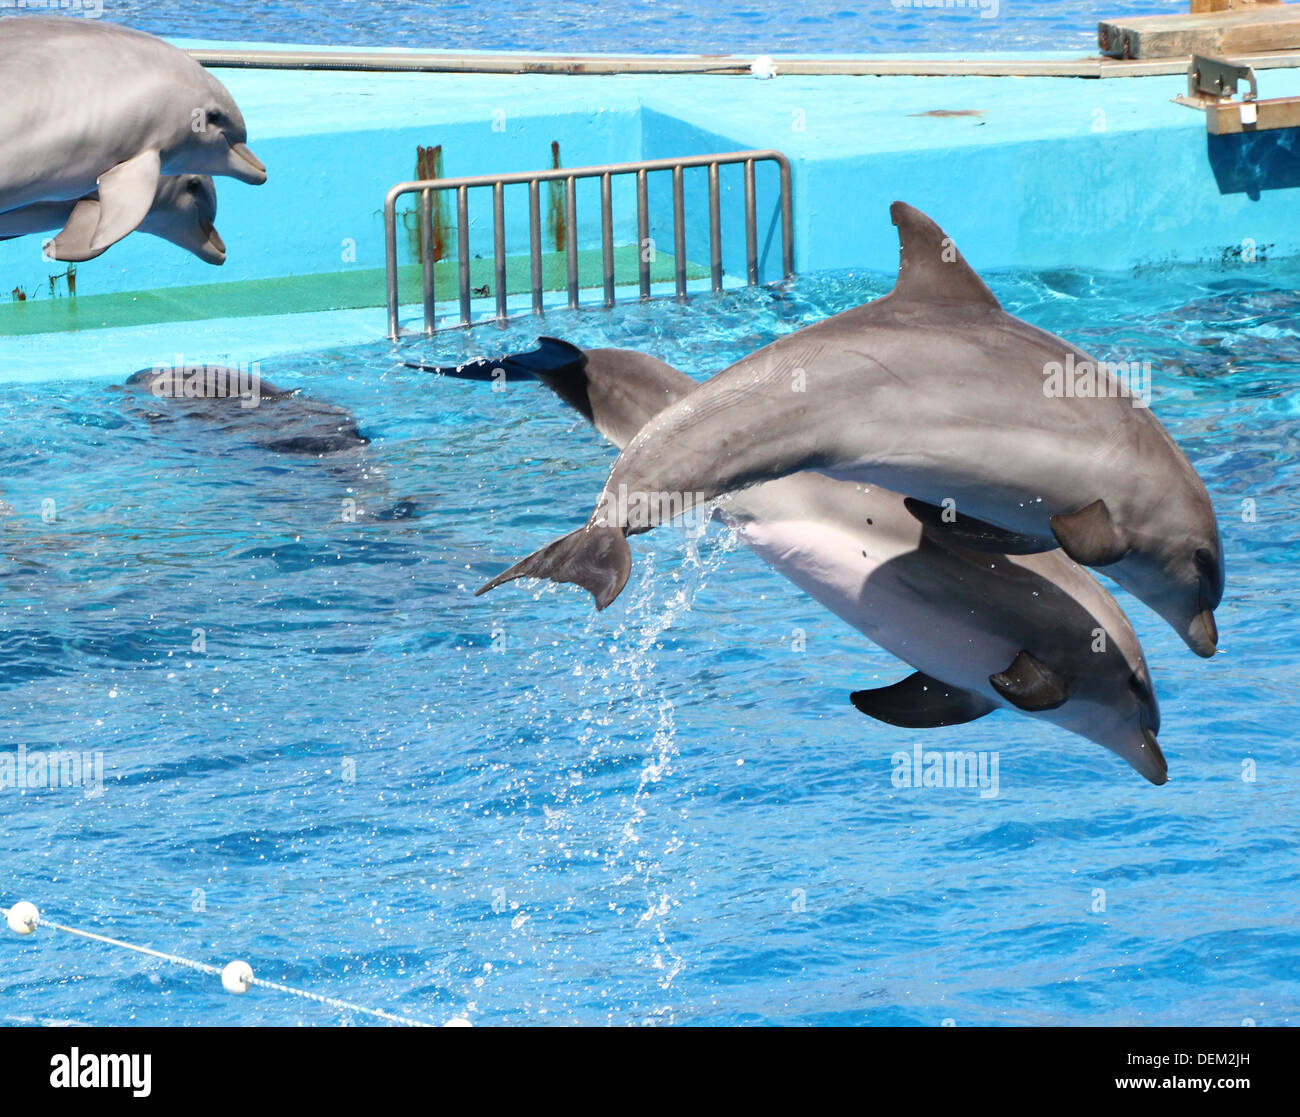 Bottle-nose dolphins jumping out of the water at the Oceanografic Aquarium Marine Park & Zoo in Valencia, Spain Stock Photo